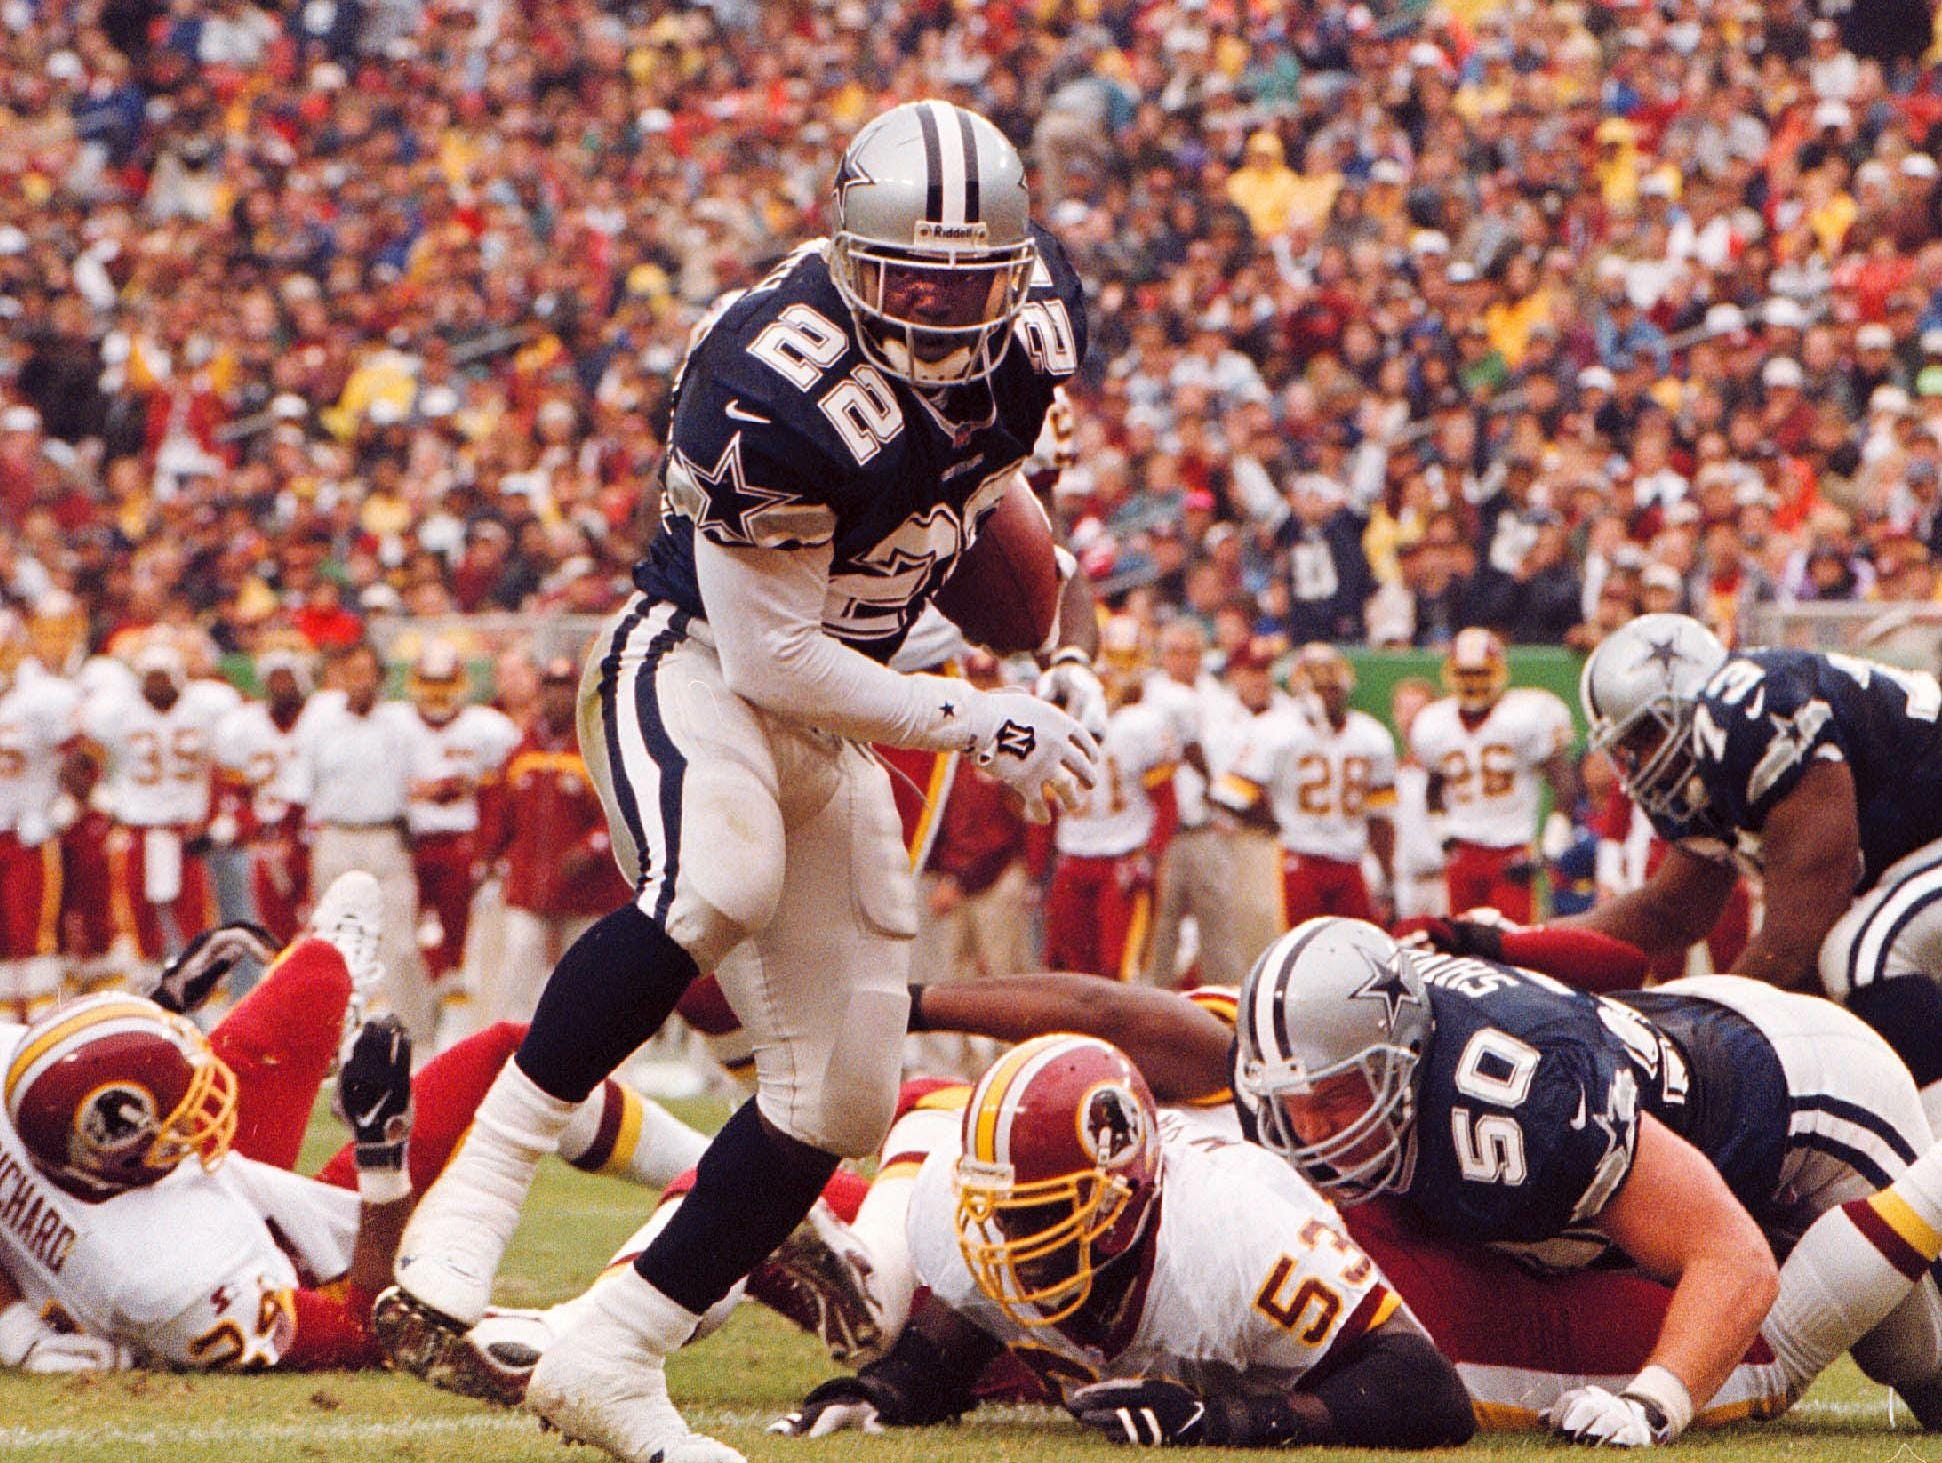 WASHINGTON, :  Dallas Cowboys running back Emmitt Smith (C) runs up the middle for a three-yard touchdown in the second quarter to put the Cowboys ahead of the Washington Redskins. The Cowboys beat the Redskins 31-10 at Jack Kent Cooke Stadium near Washington, DC. AFP PHOTO/HEATHER HALL (Photo credit should read HEATHER HALL/AFP/Getty Images)